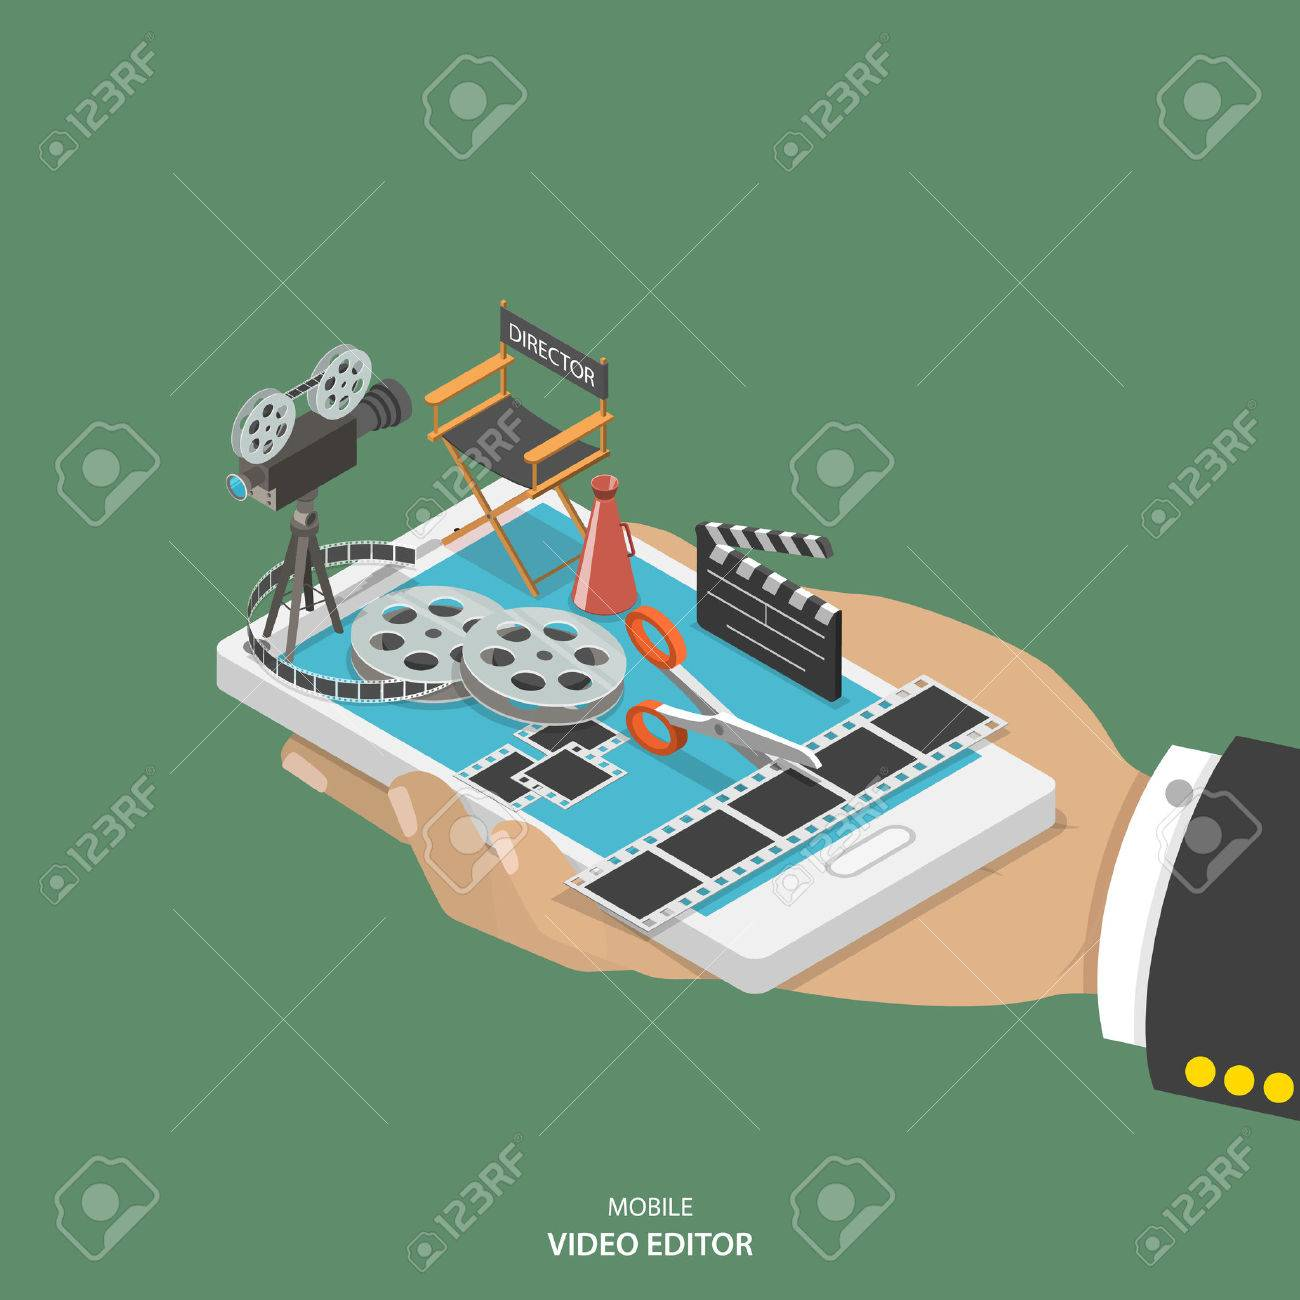 Mobile video editor flat isometric vector concept. Hand with smartphone and equipment for movie creating like film strip, camera, directors chair on it. - 50042303